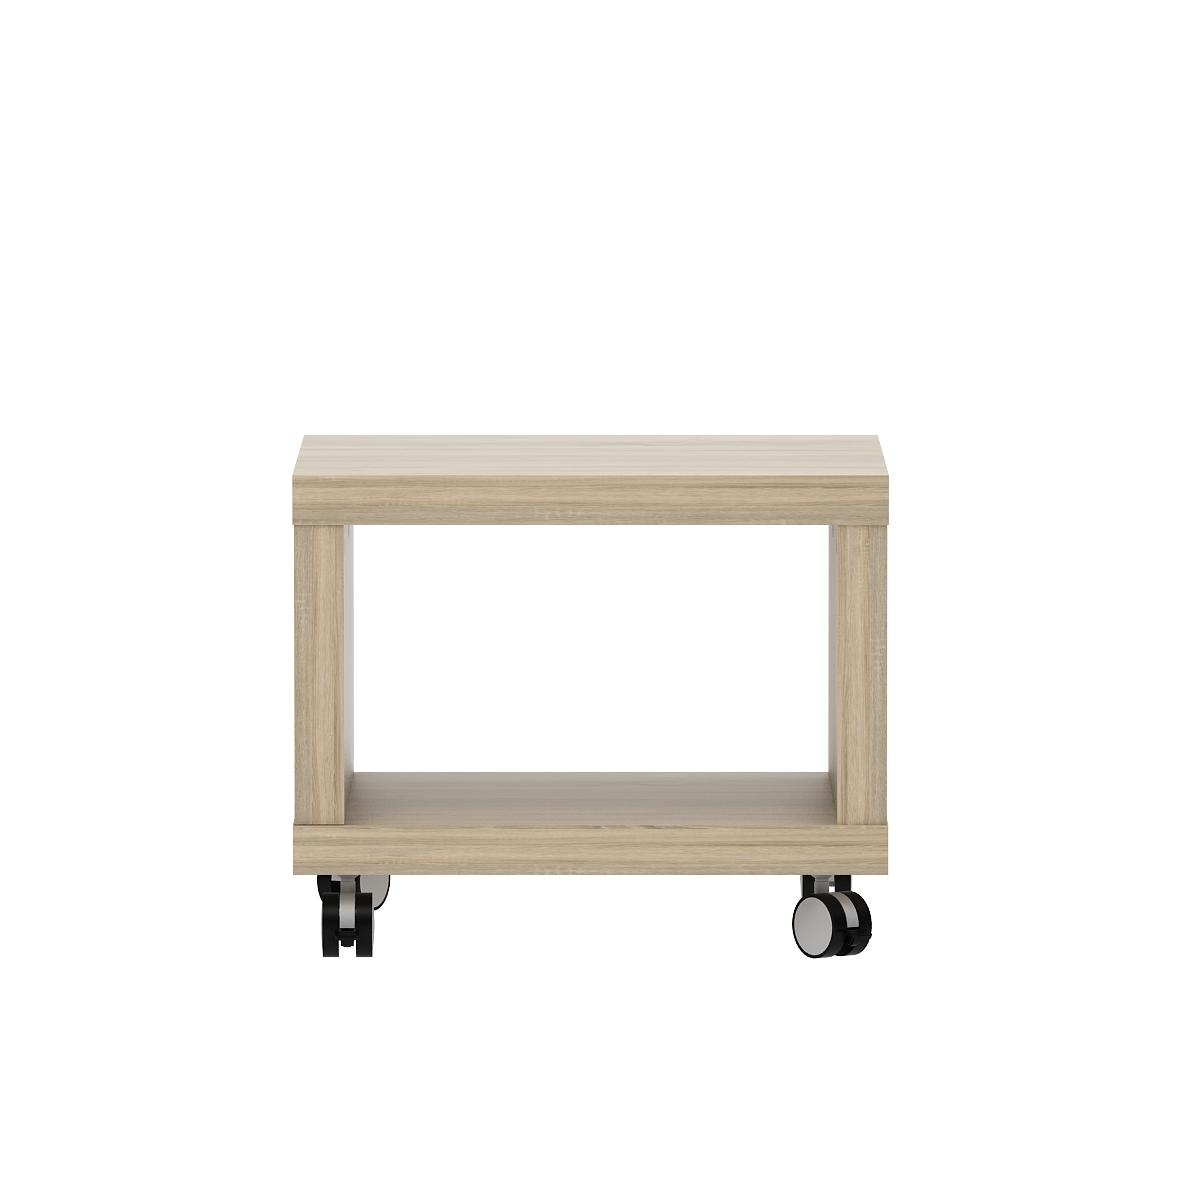 Pro Design Small Table LUIS (LUISST)